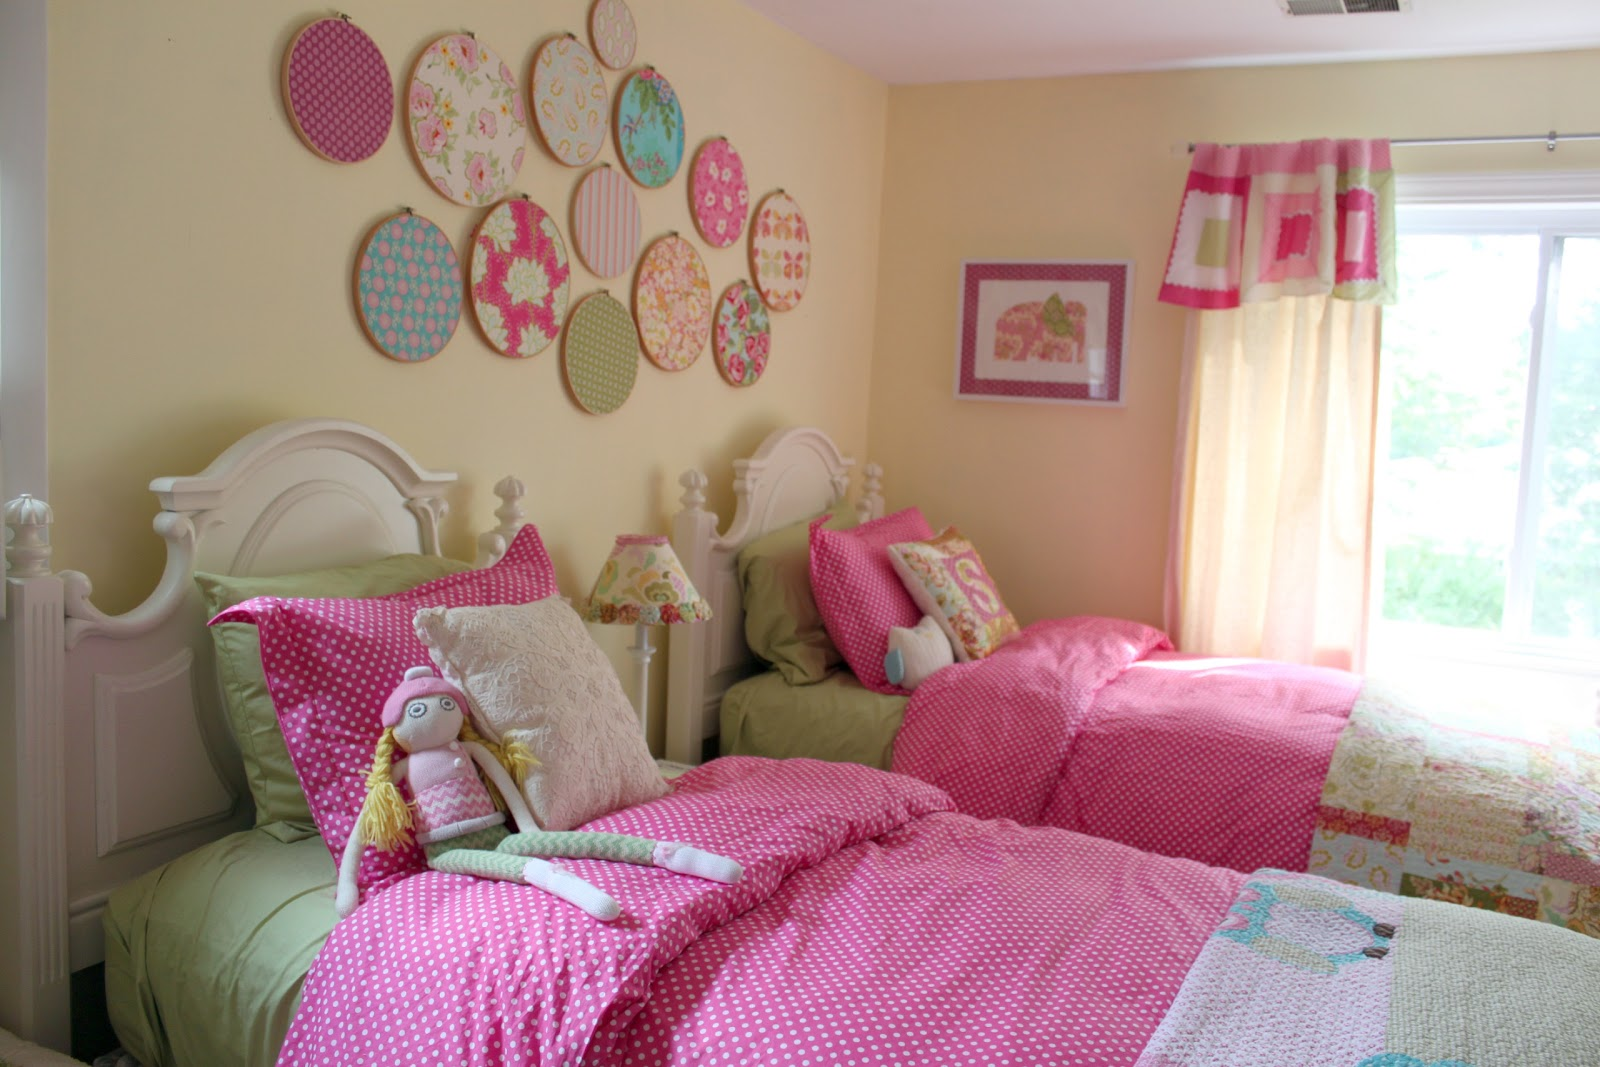 Decorating girls shared toddler bedroom the cottage mama for Girl toddler bedroom ideas